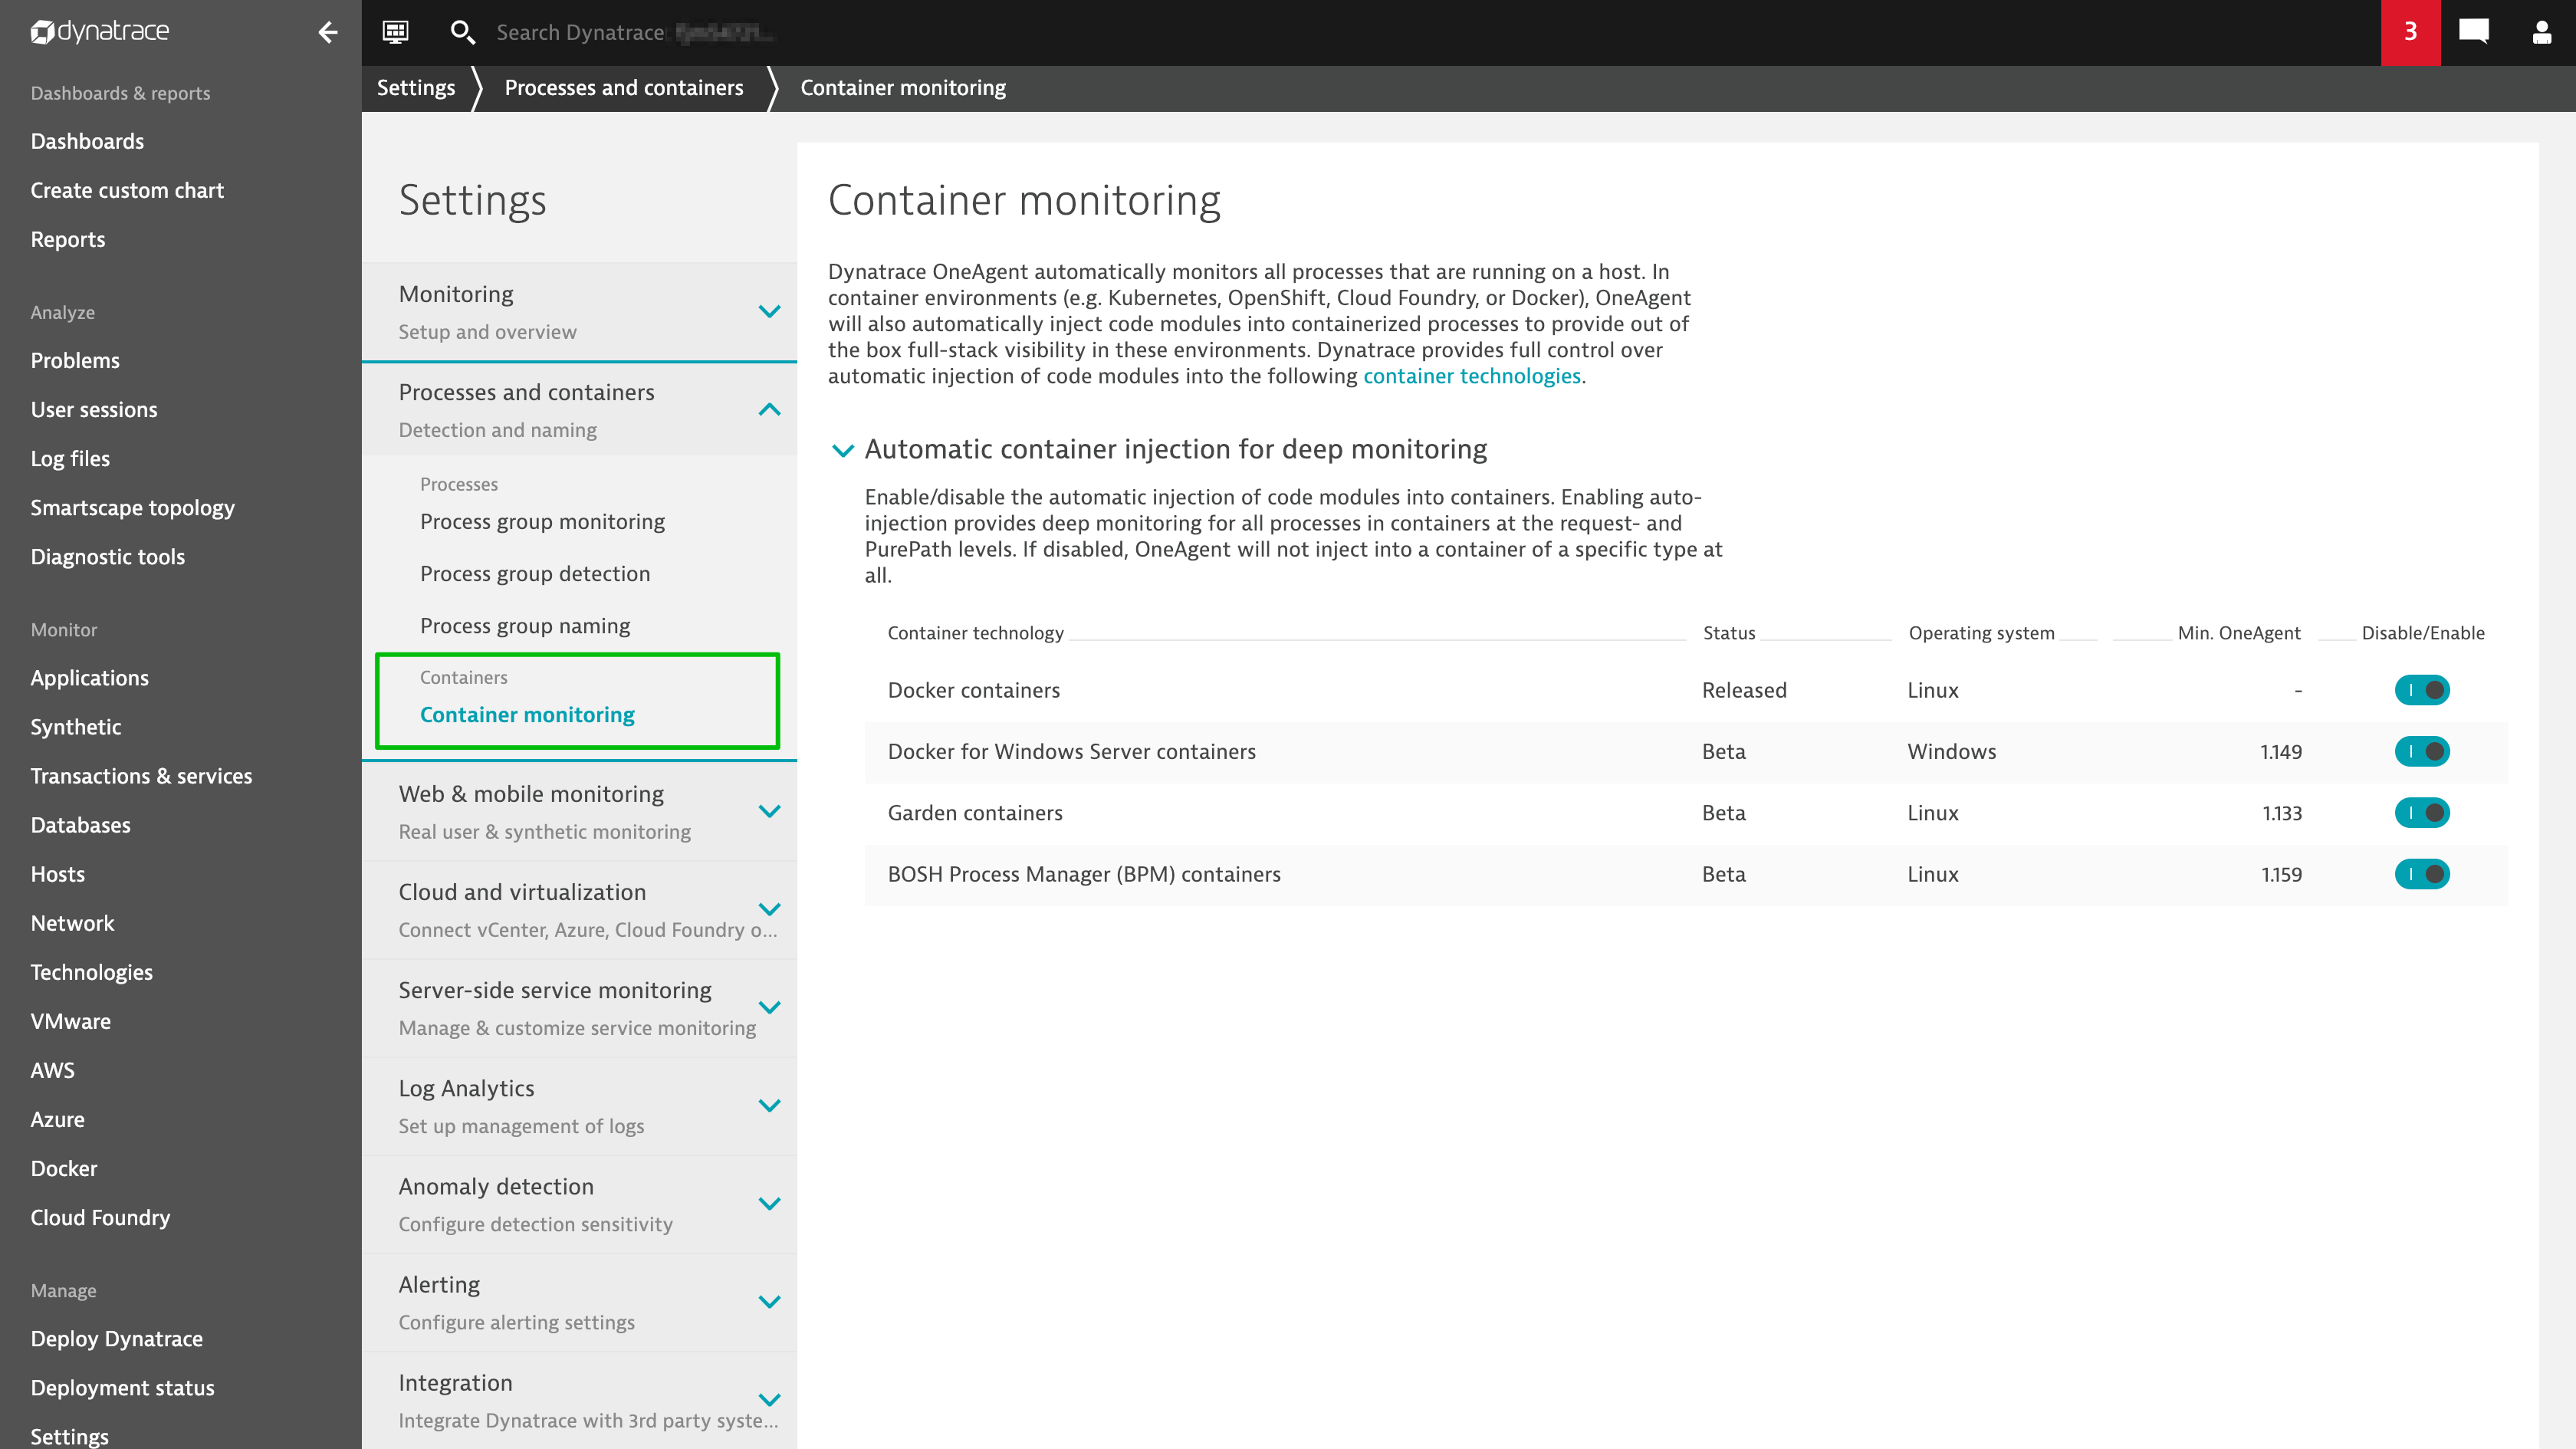 New container monitoring settings page